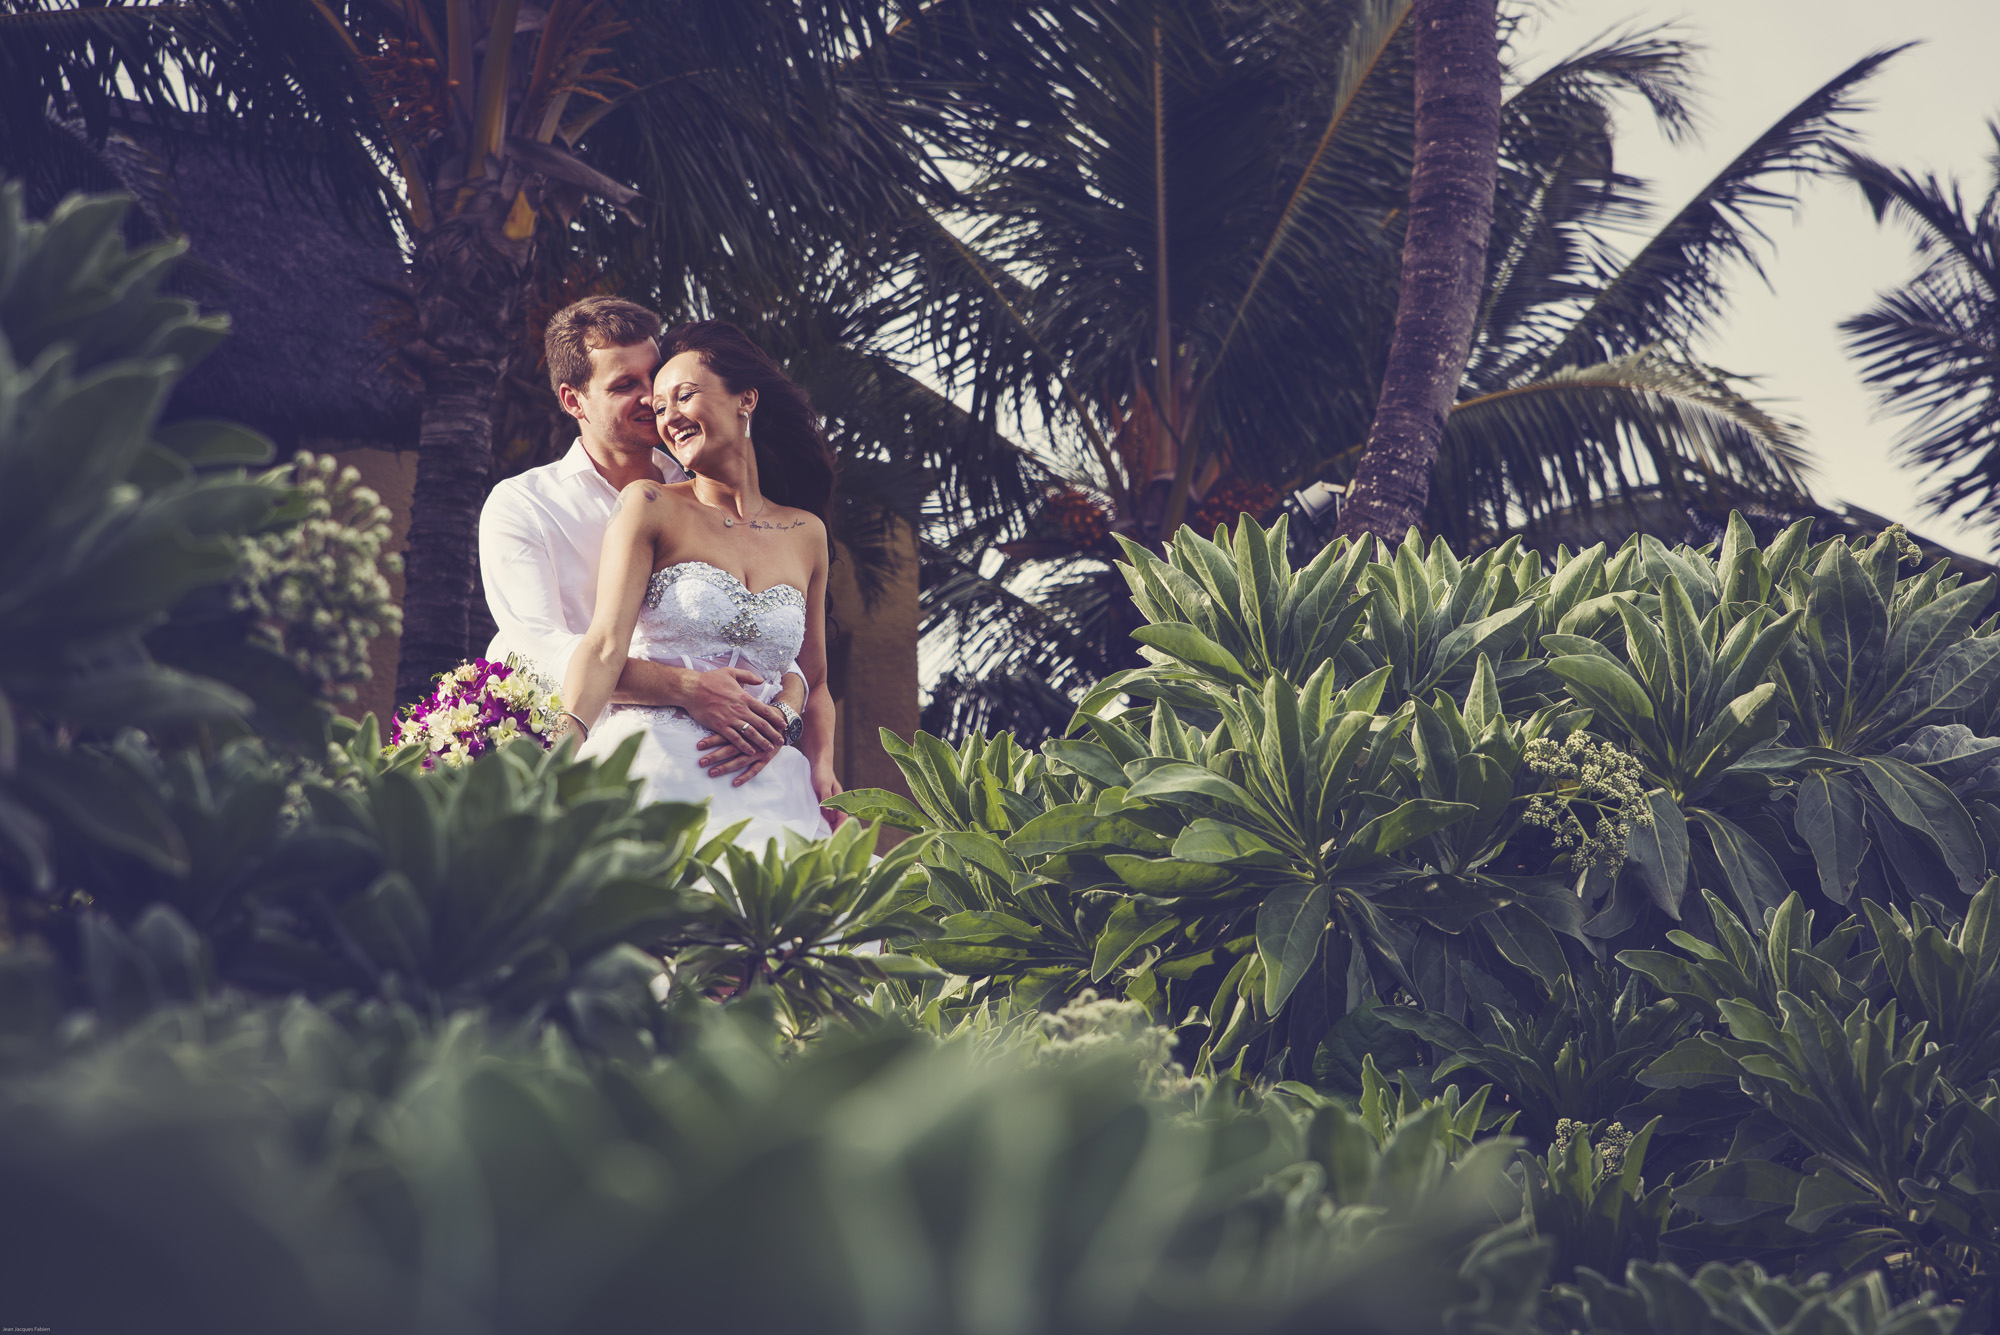 Justyna and Michael-142.jpg